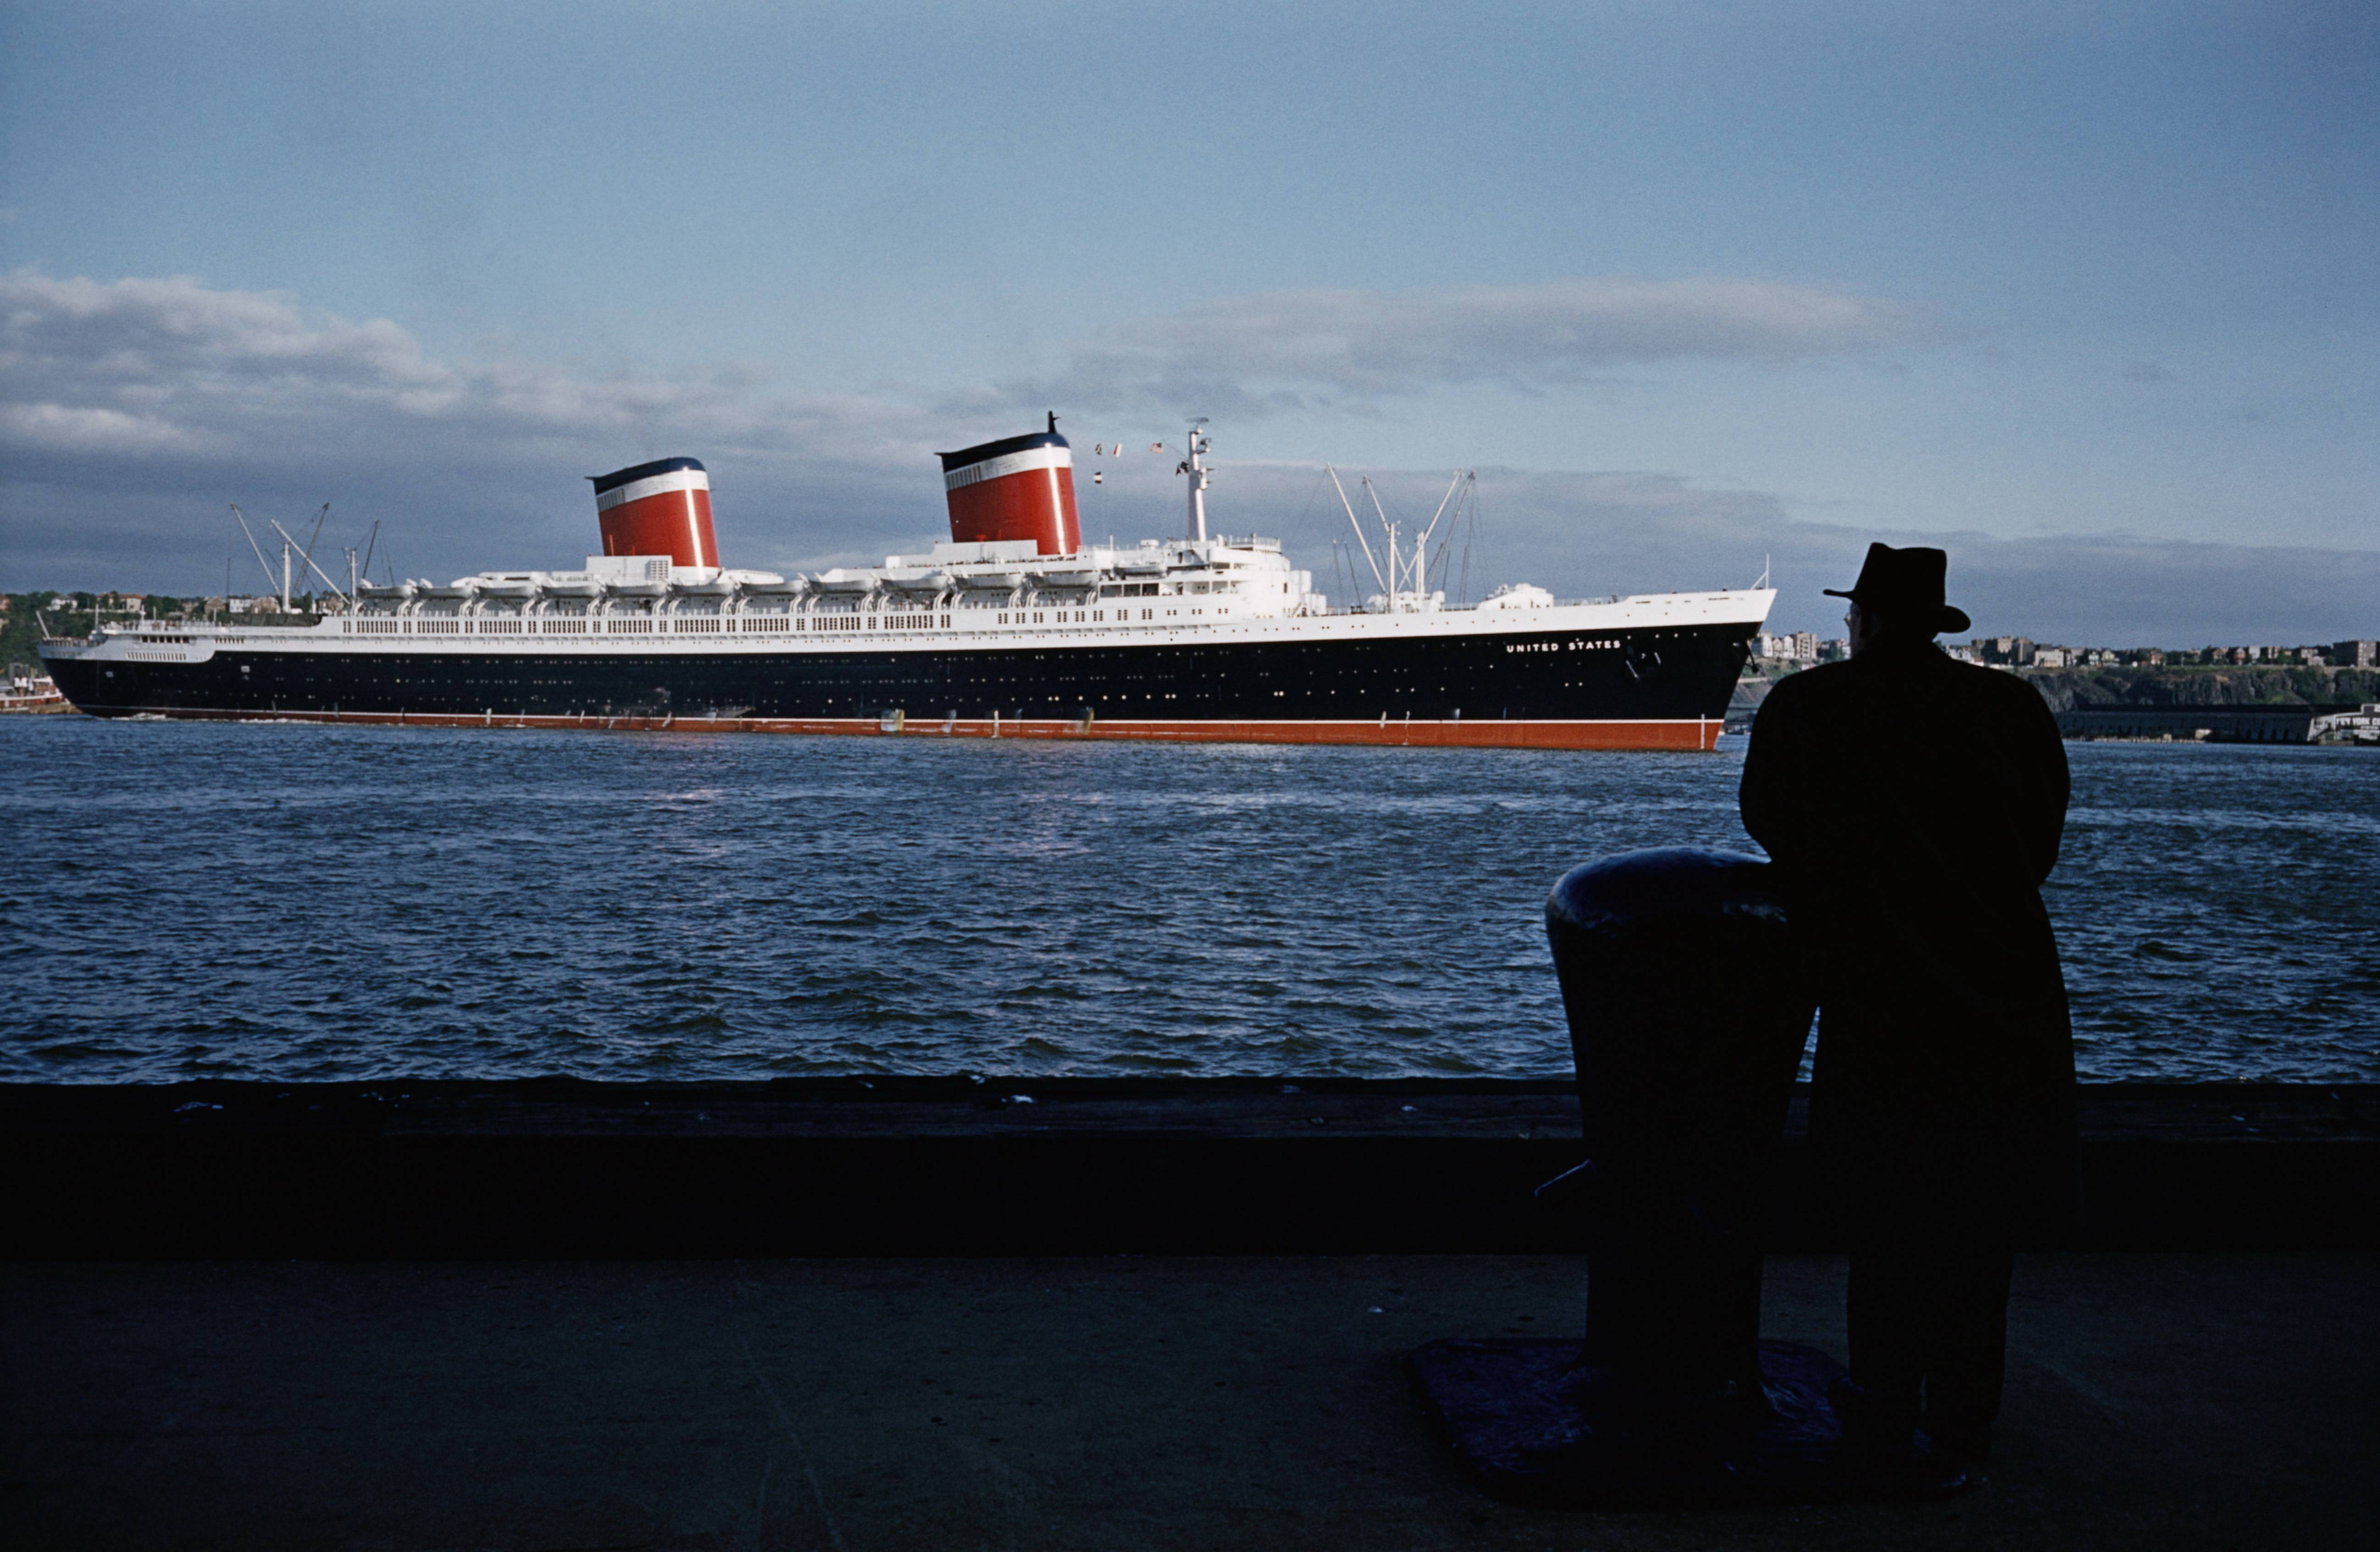 Naval architect William Francis Gibbs observing his creation the SS United States upon arrival at New York harbor.